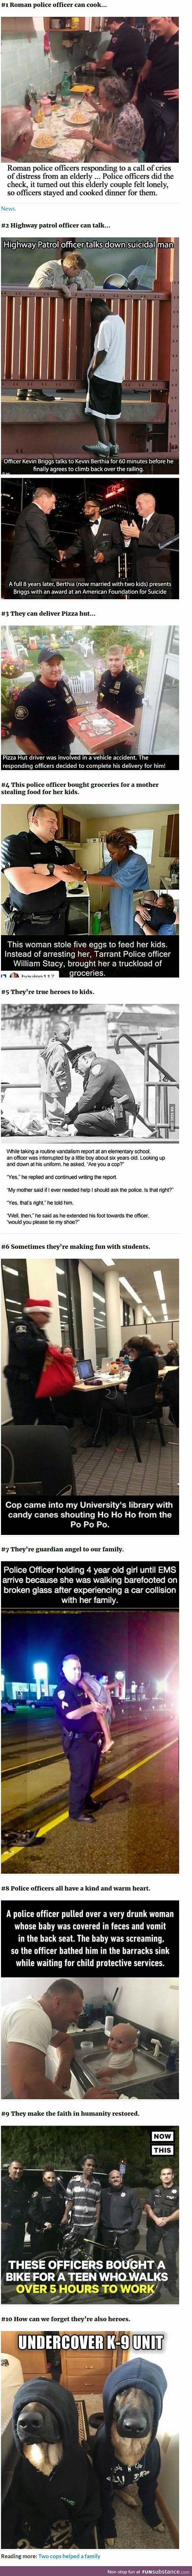 Random acts of kindness: Police Edition